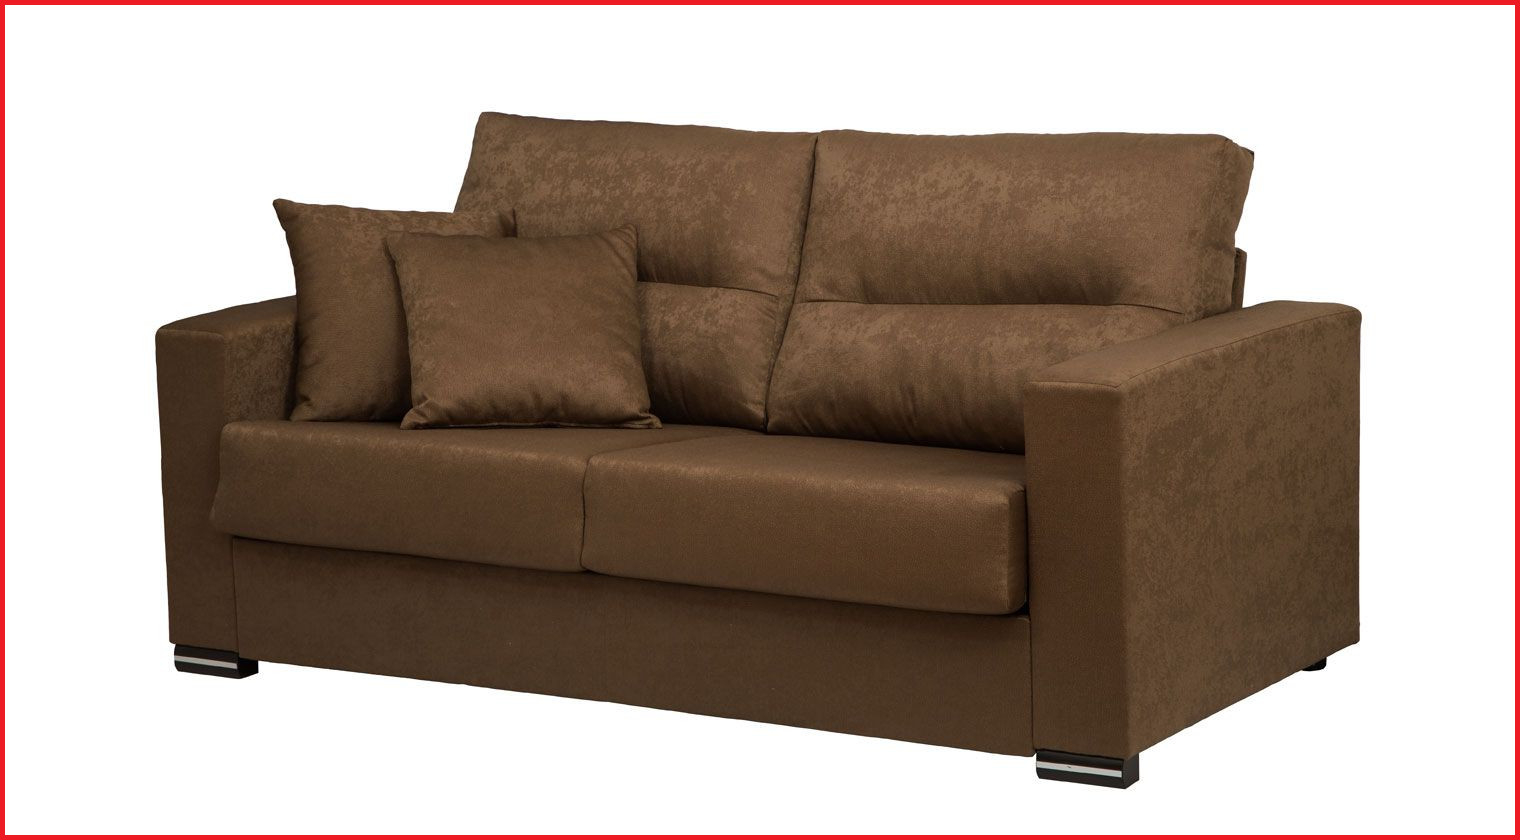 Sofa Cama Barato En Madrid Sofas Baratos Madrid Outlet U3dh Sofa Cama Barato Madrid Sofas